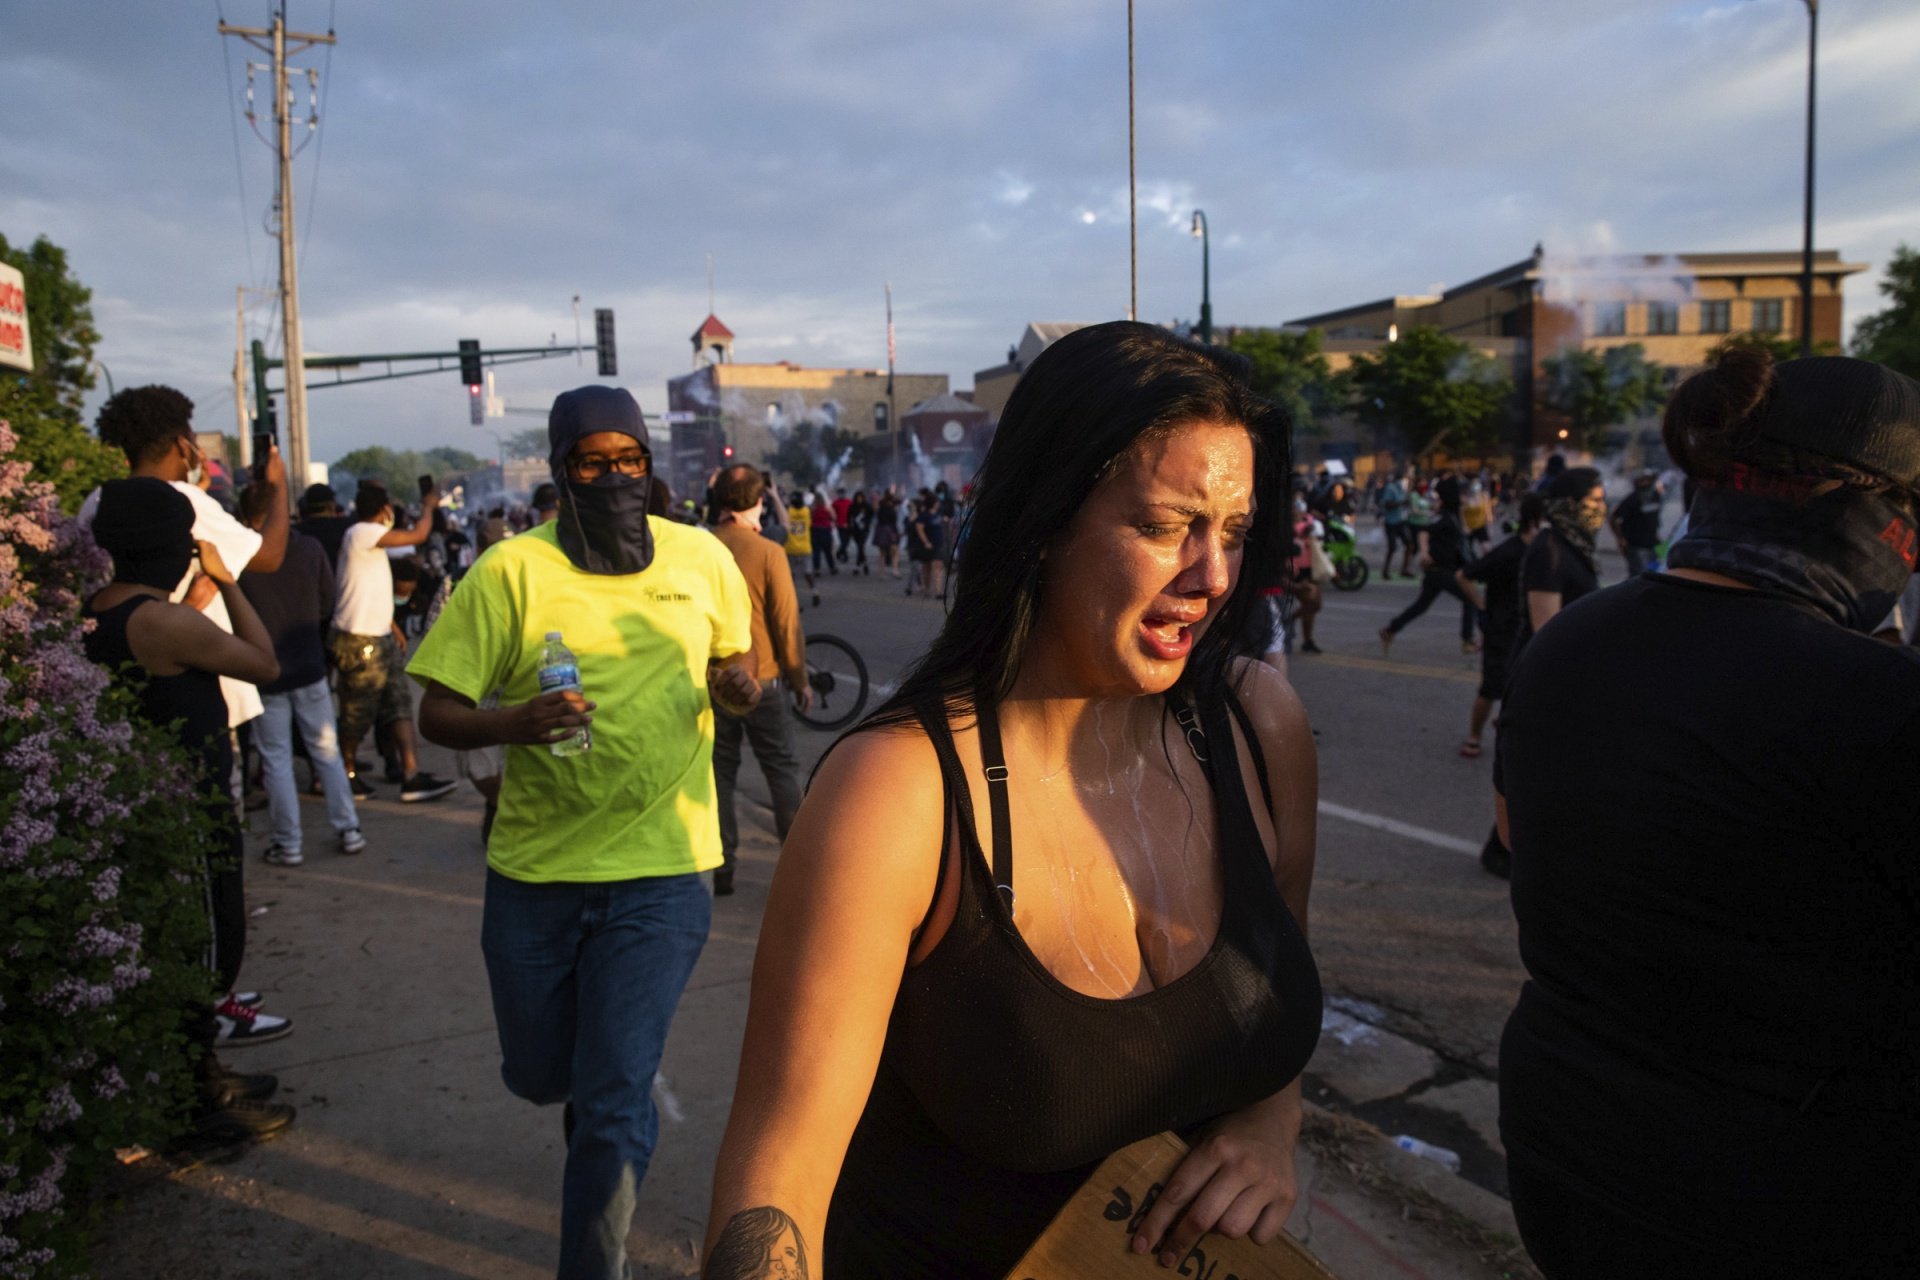 People run away from tear gas fired by Minneapolis police outside the 3rd Precinct building during protests